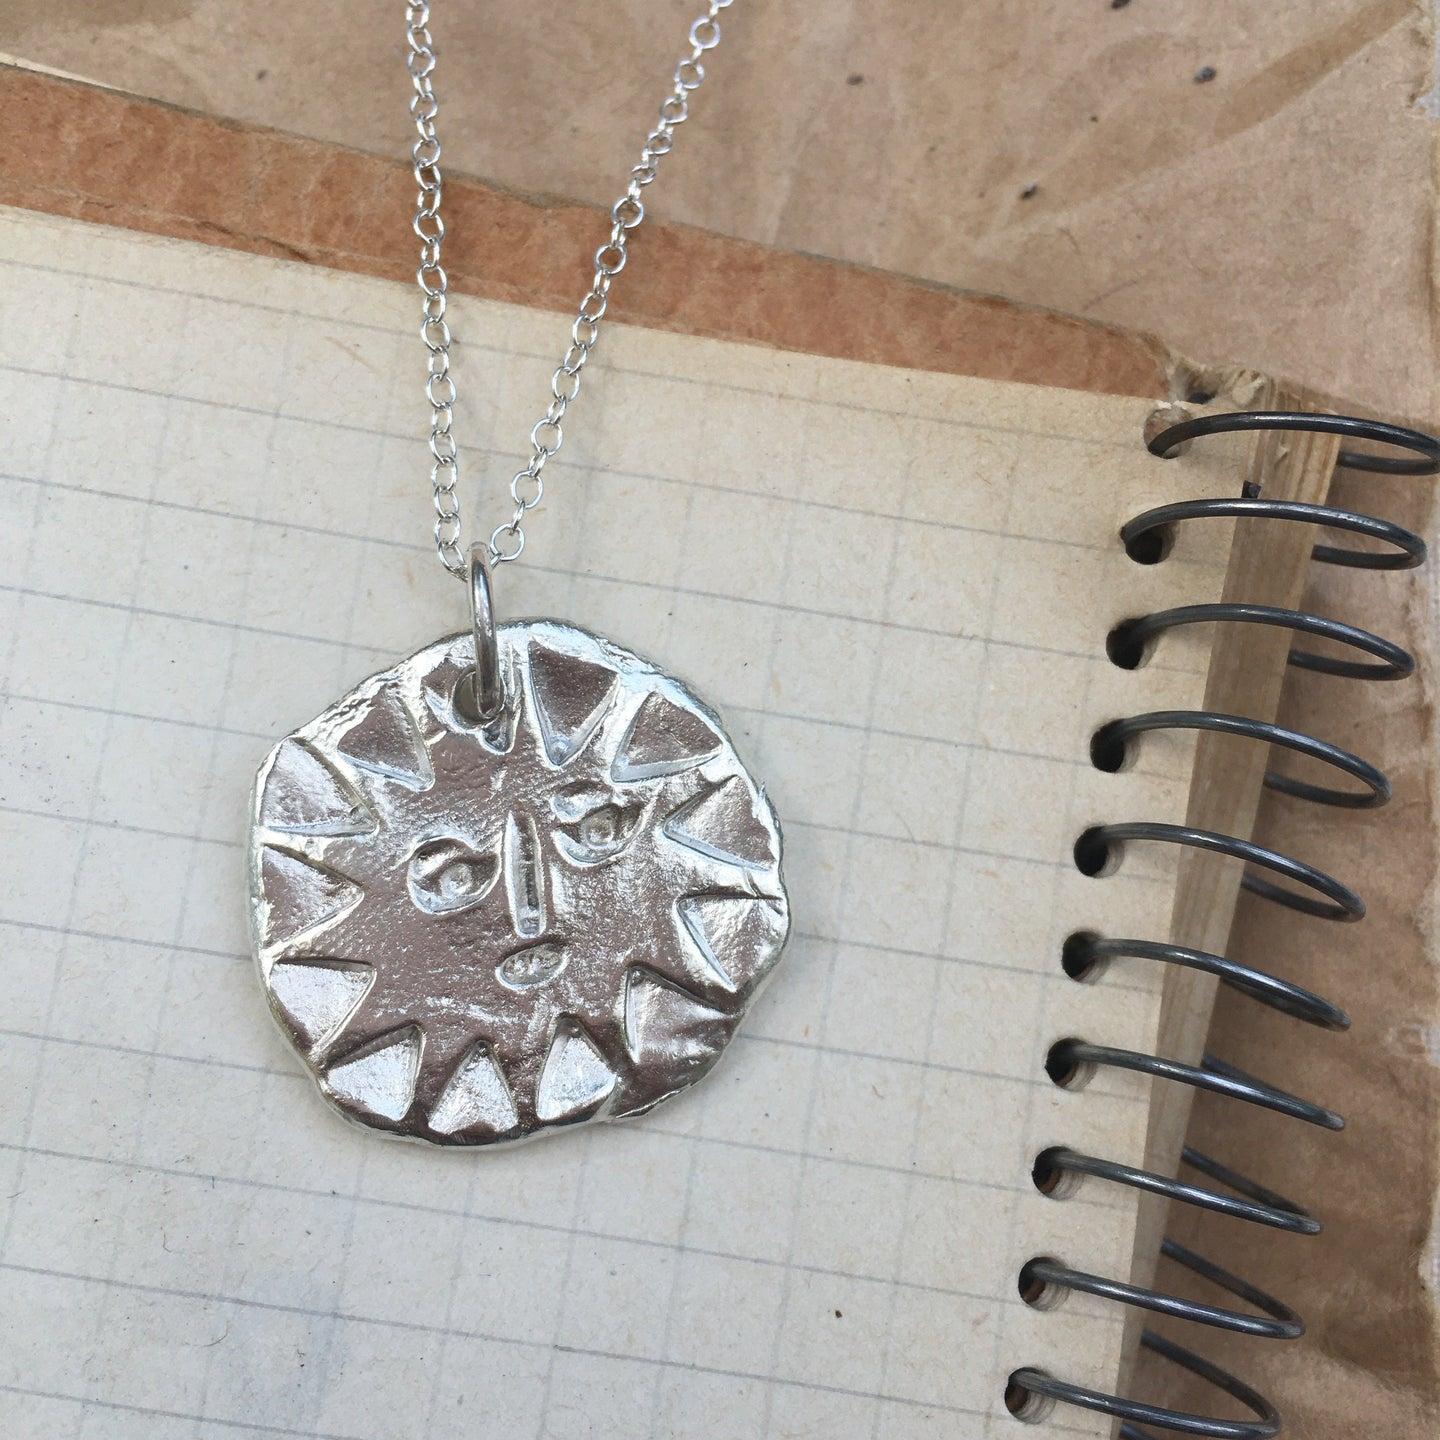 T H E I A  Sun Face Medium Coin Necklace Solid Sterling Silver